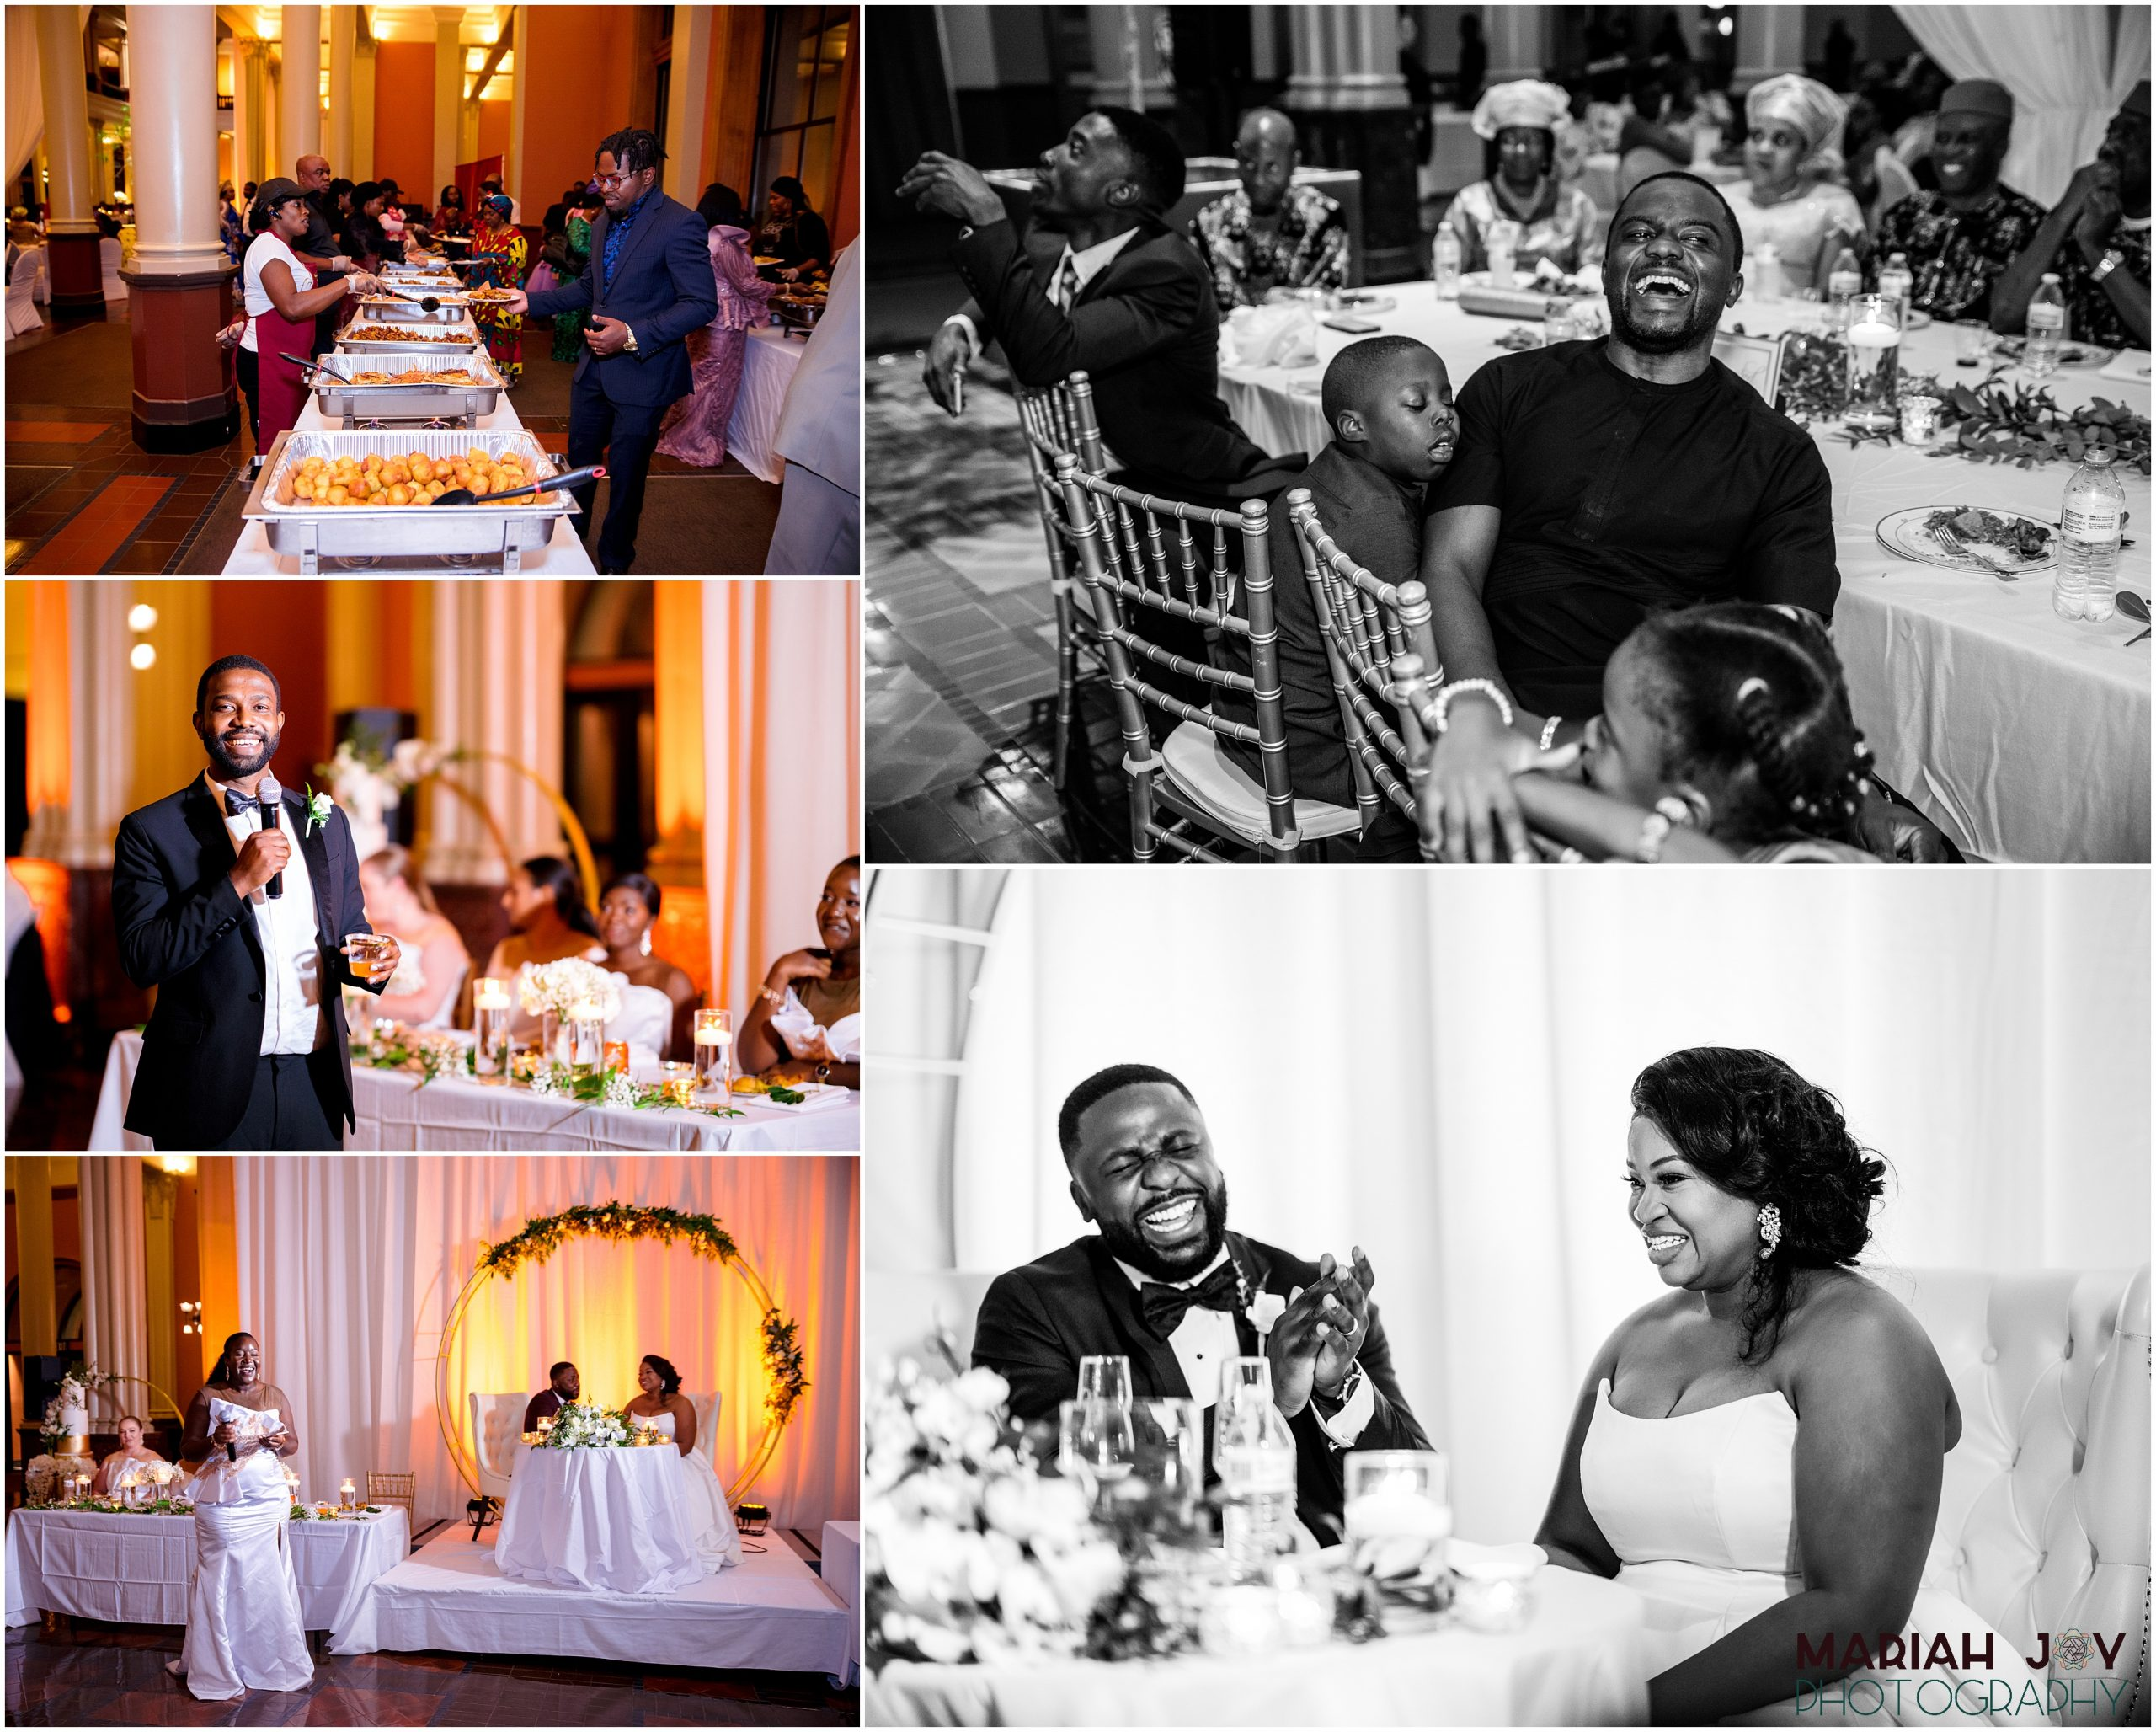 LandmarkCenterWeddingReception-19.jpg